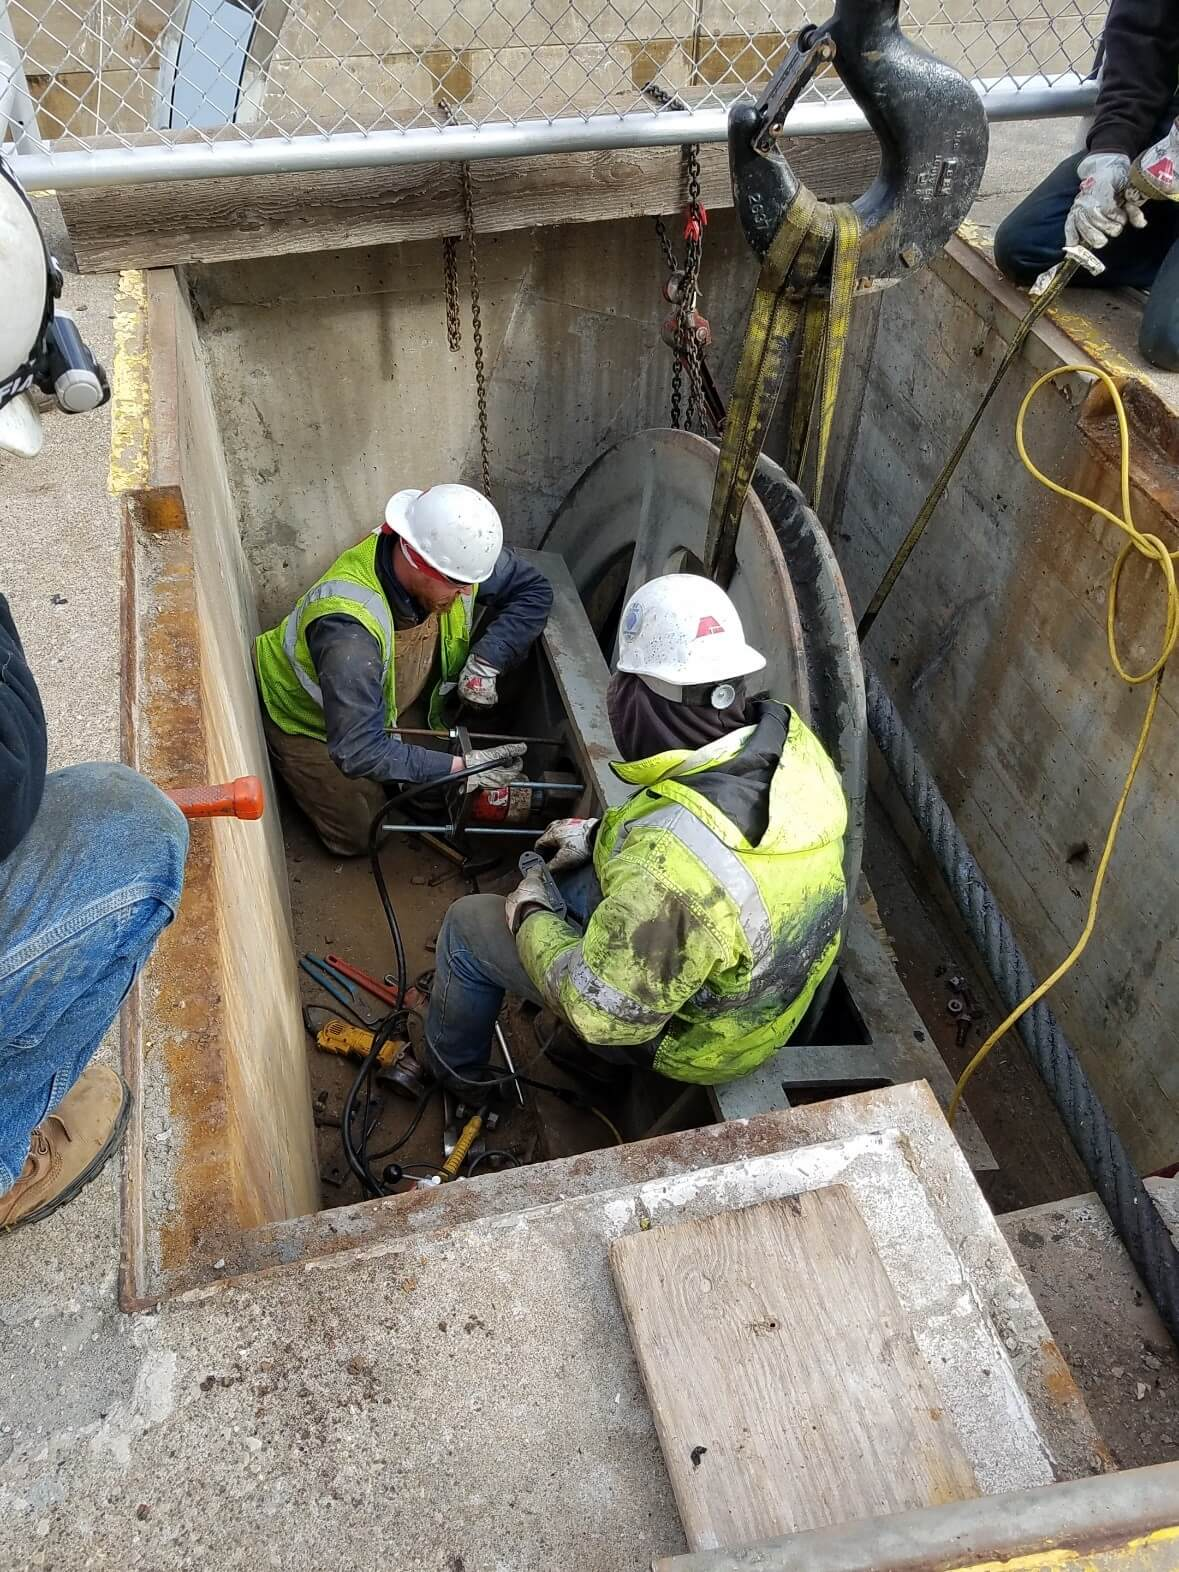 Two Men Working in a Small Space at Upper St. Anthony Falls Lock and Dam